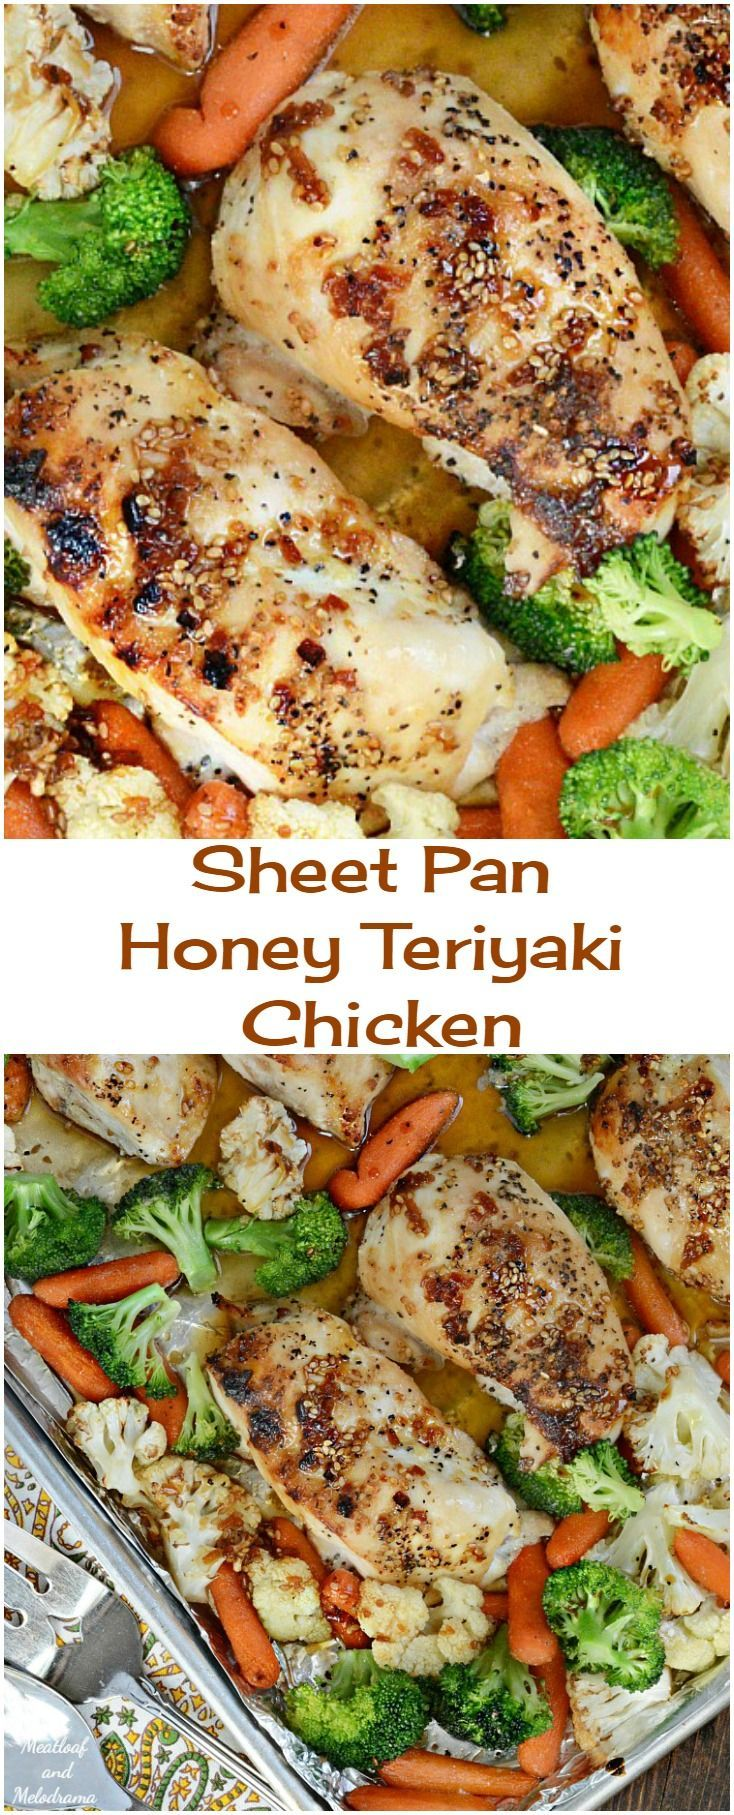 Sheet Pan Honey Teriyaki Chicken Dinner with Roasted Veggies - An easy one pan meal ready in 30 minutes with quick clean up too!